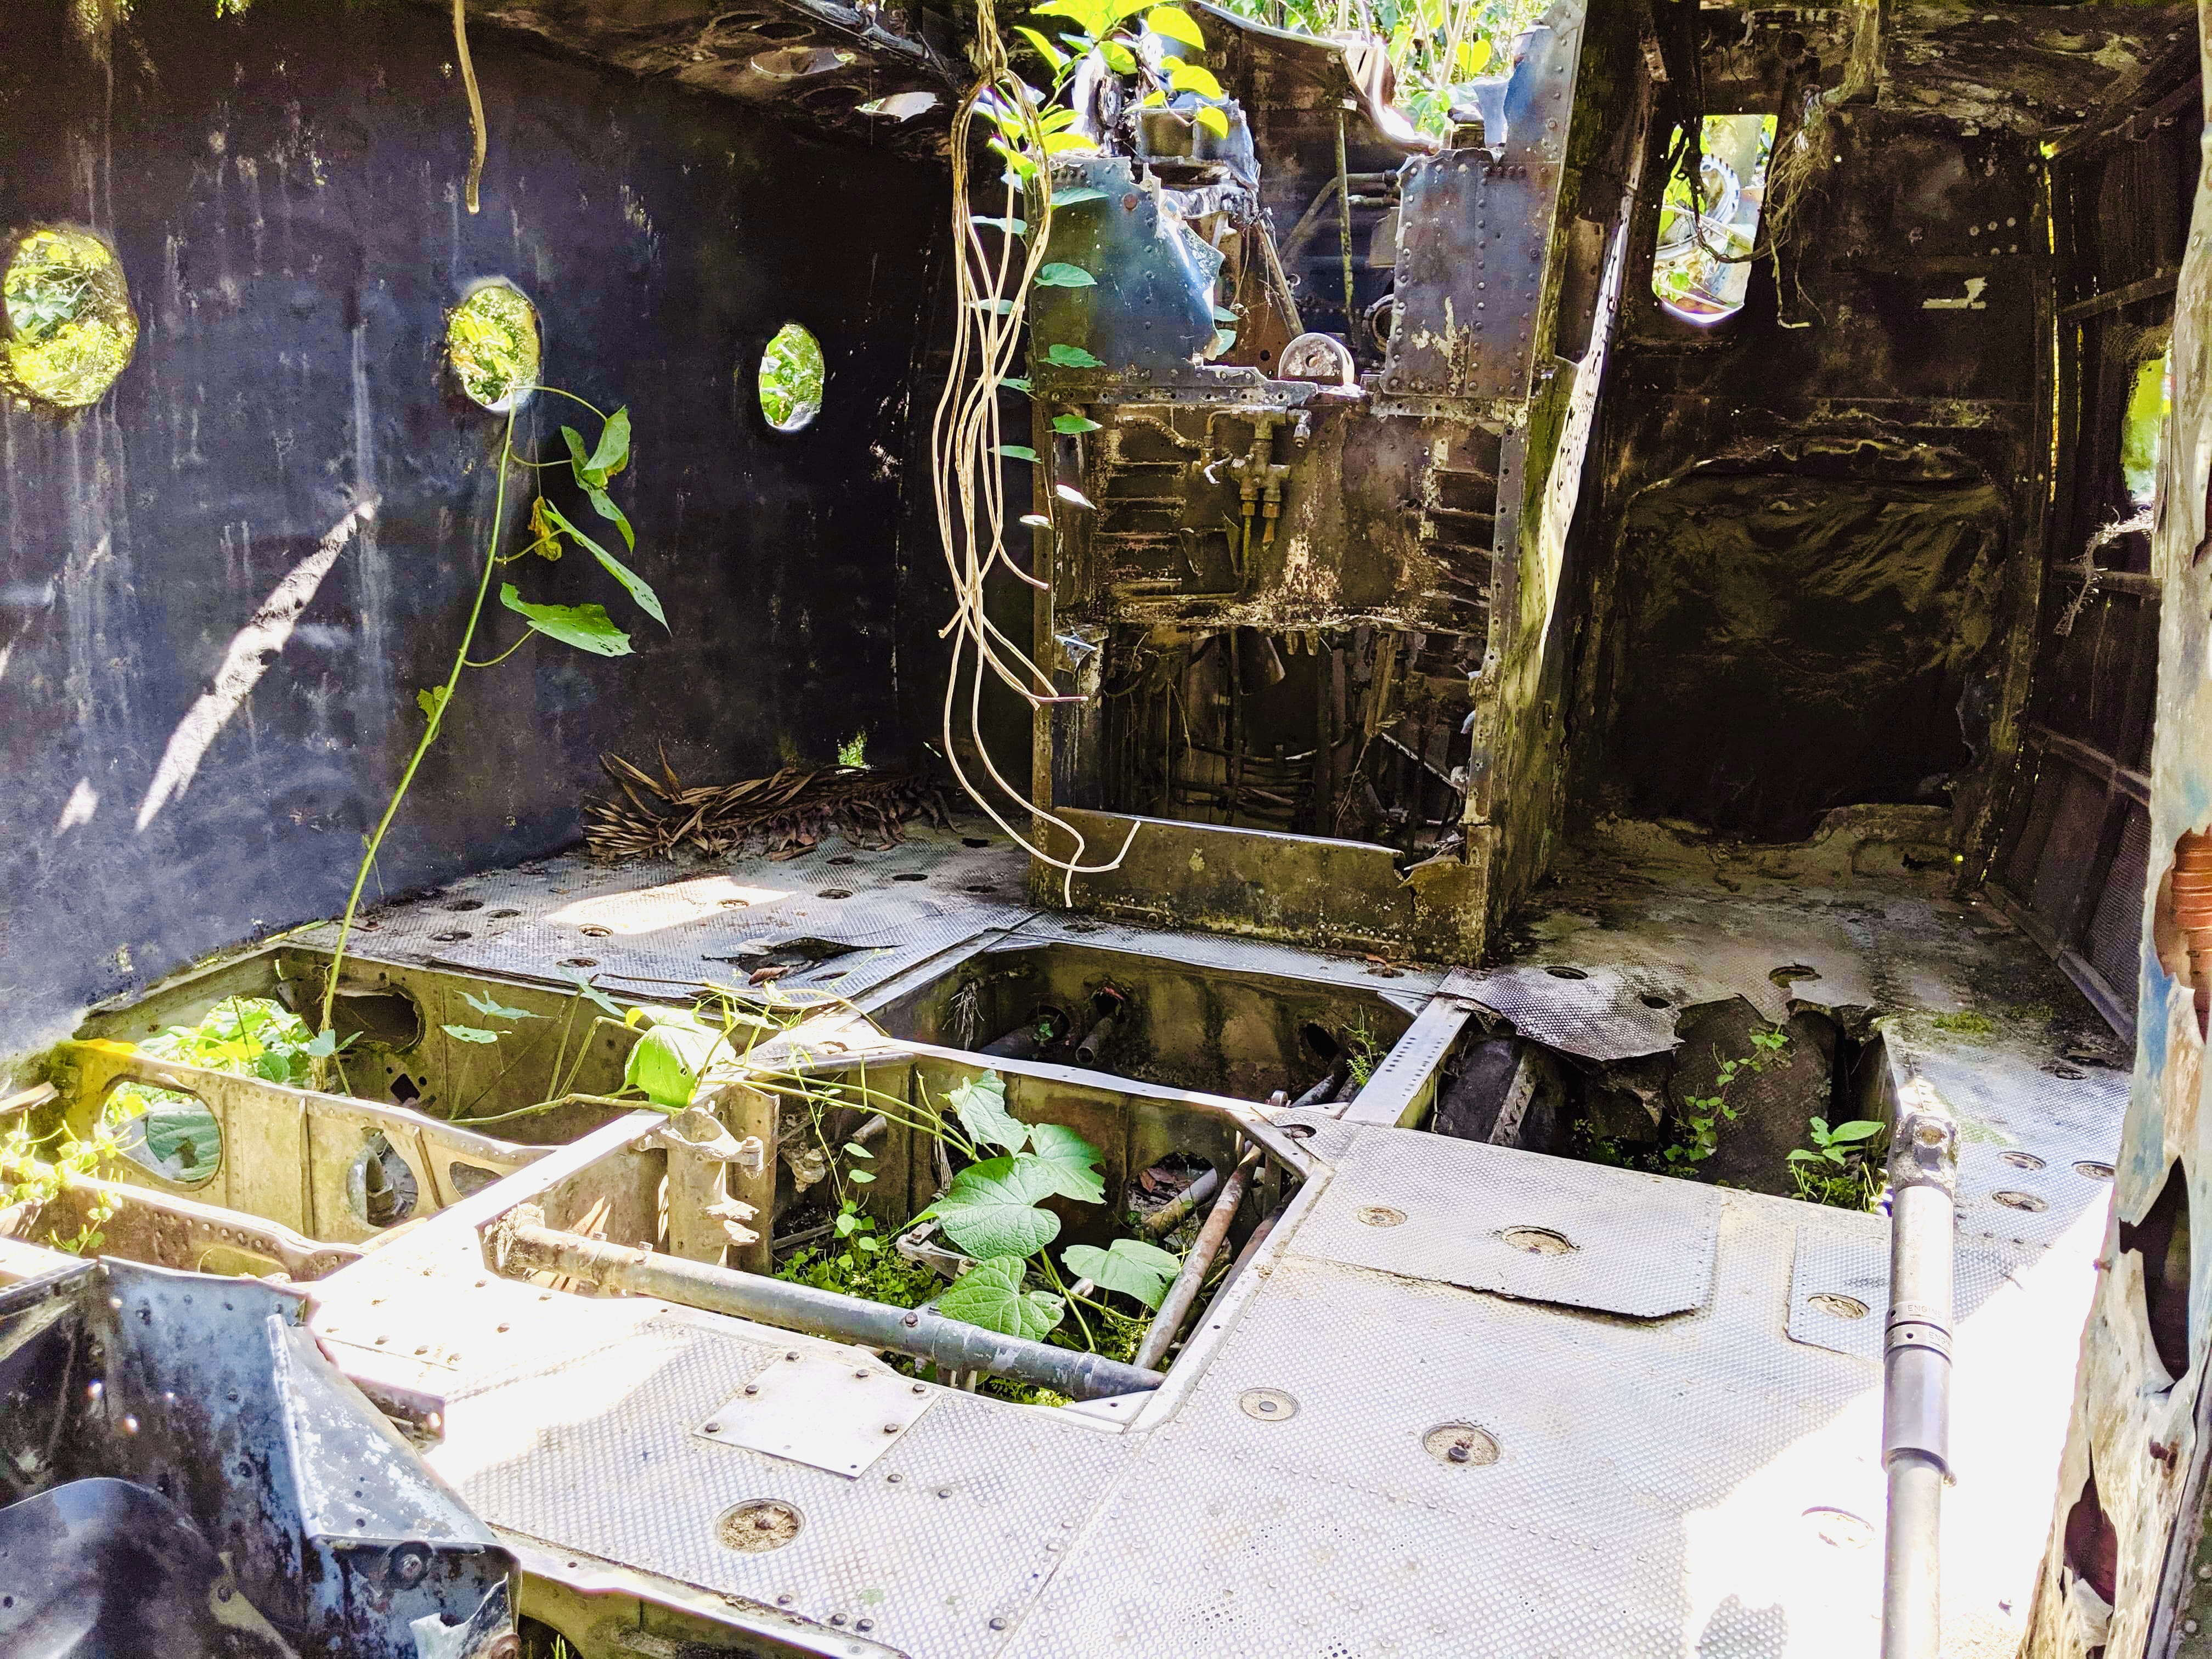 Inside the plane from Predator, with holes in the floor, and plant overgrowth